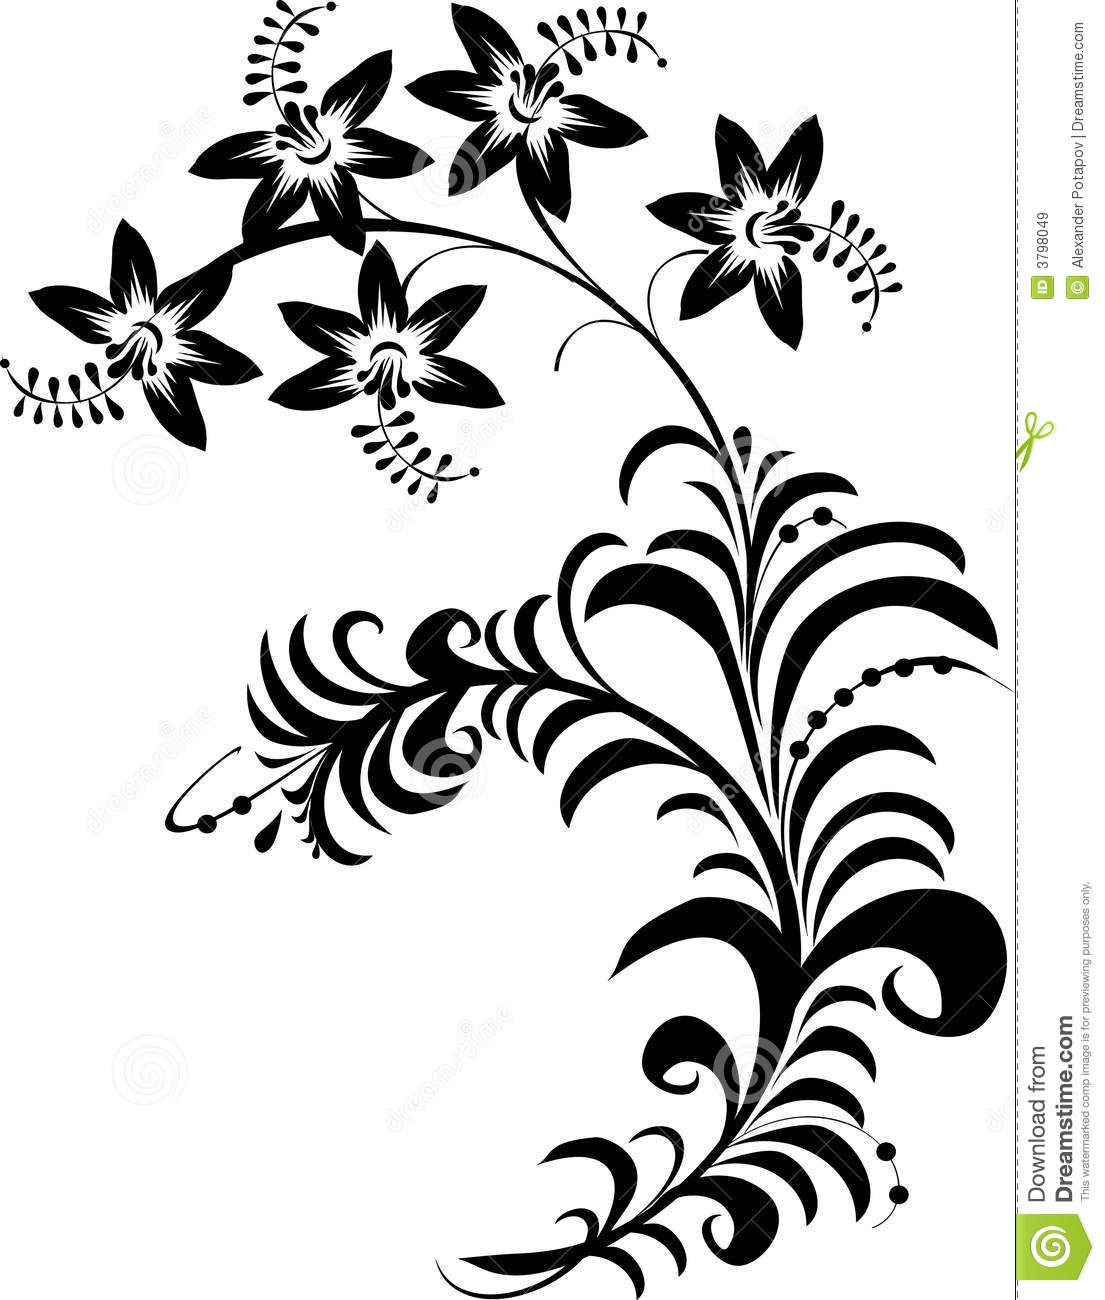 Black and white flowers stock vector. Illustration of